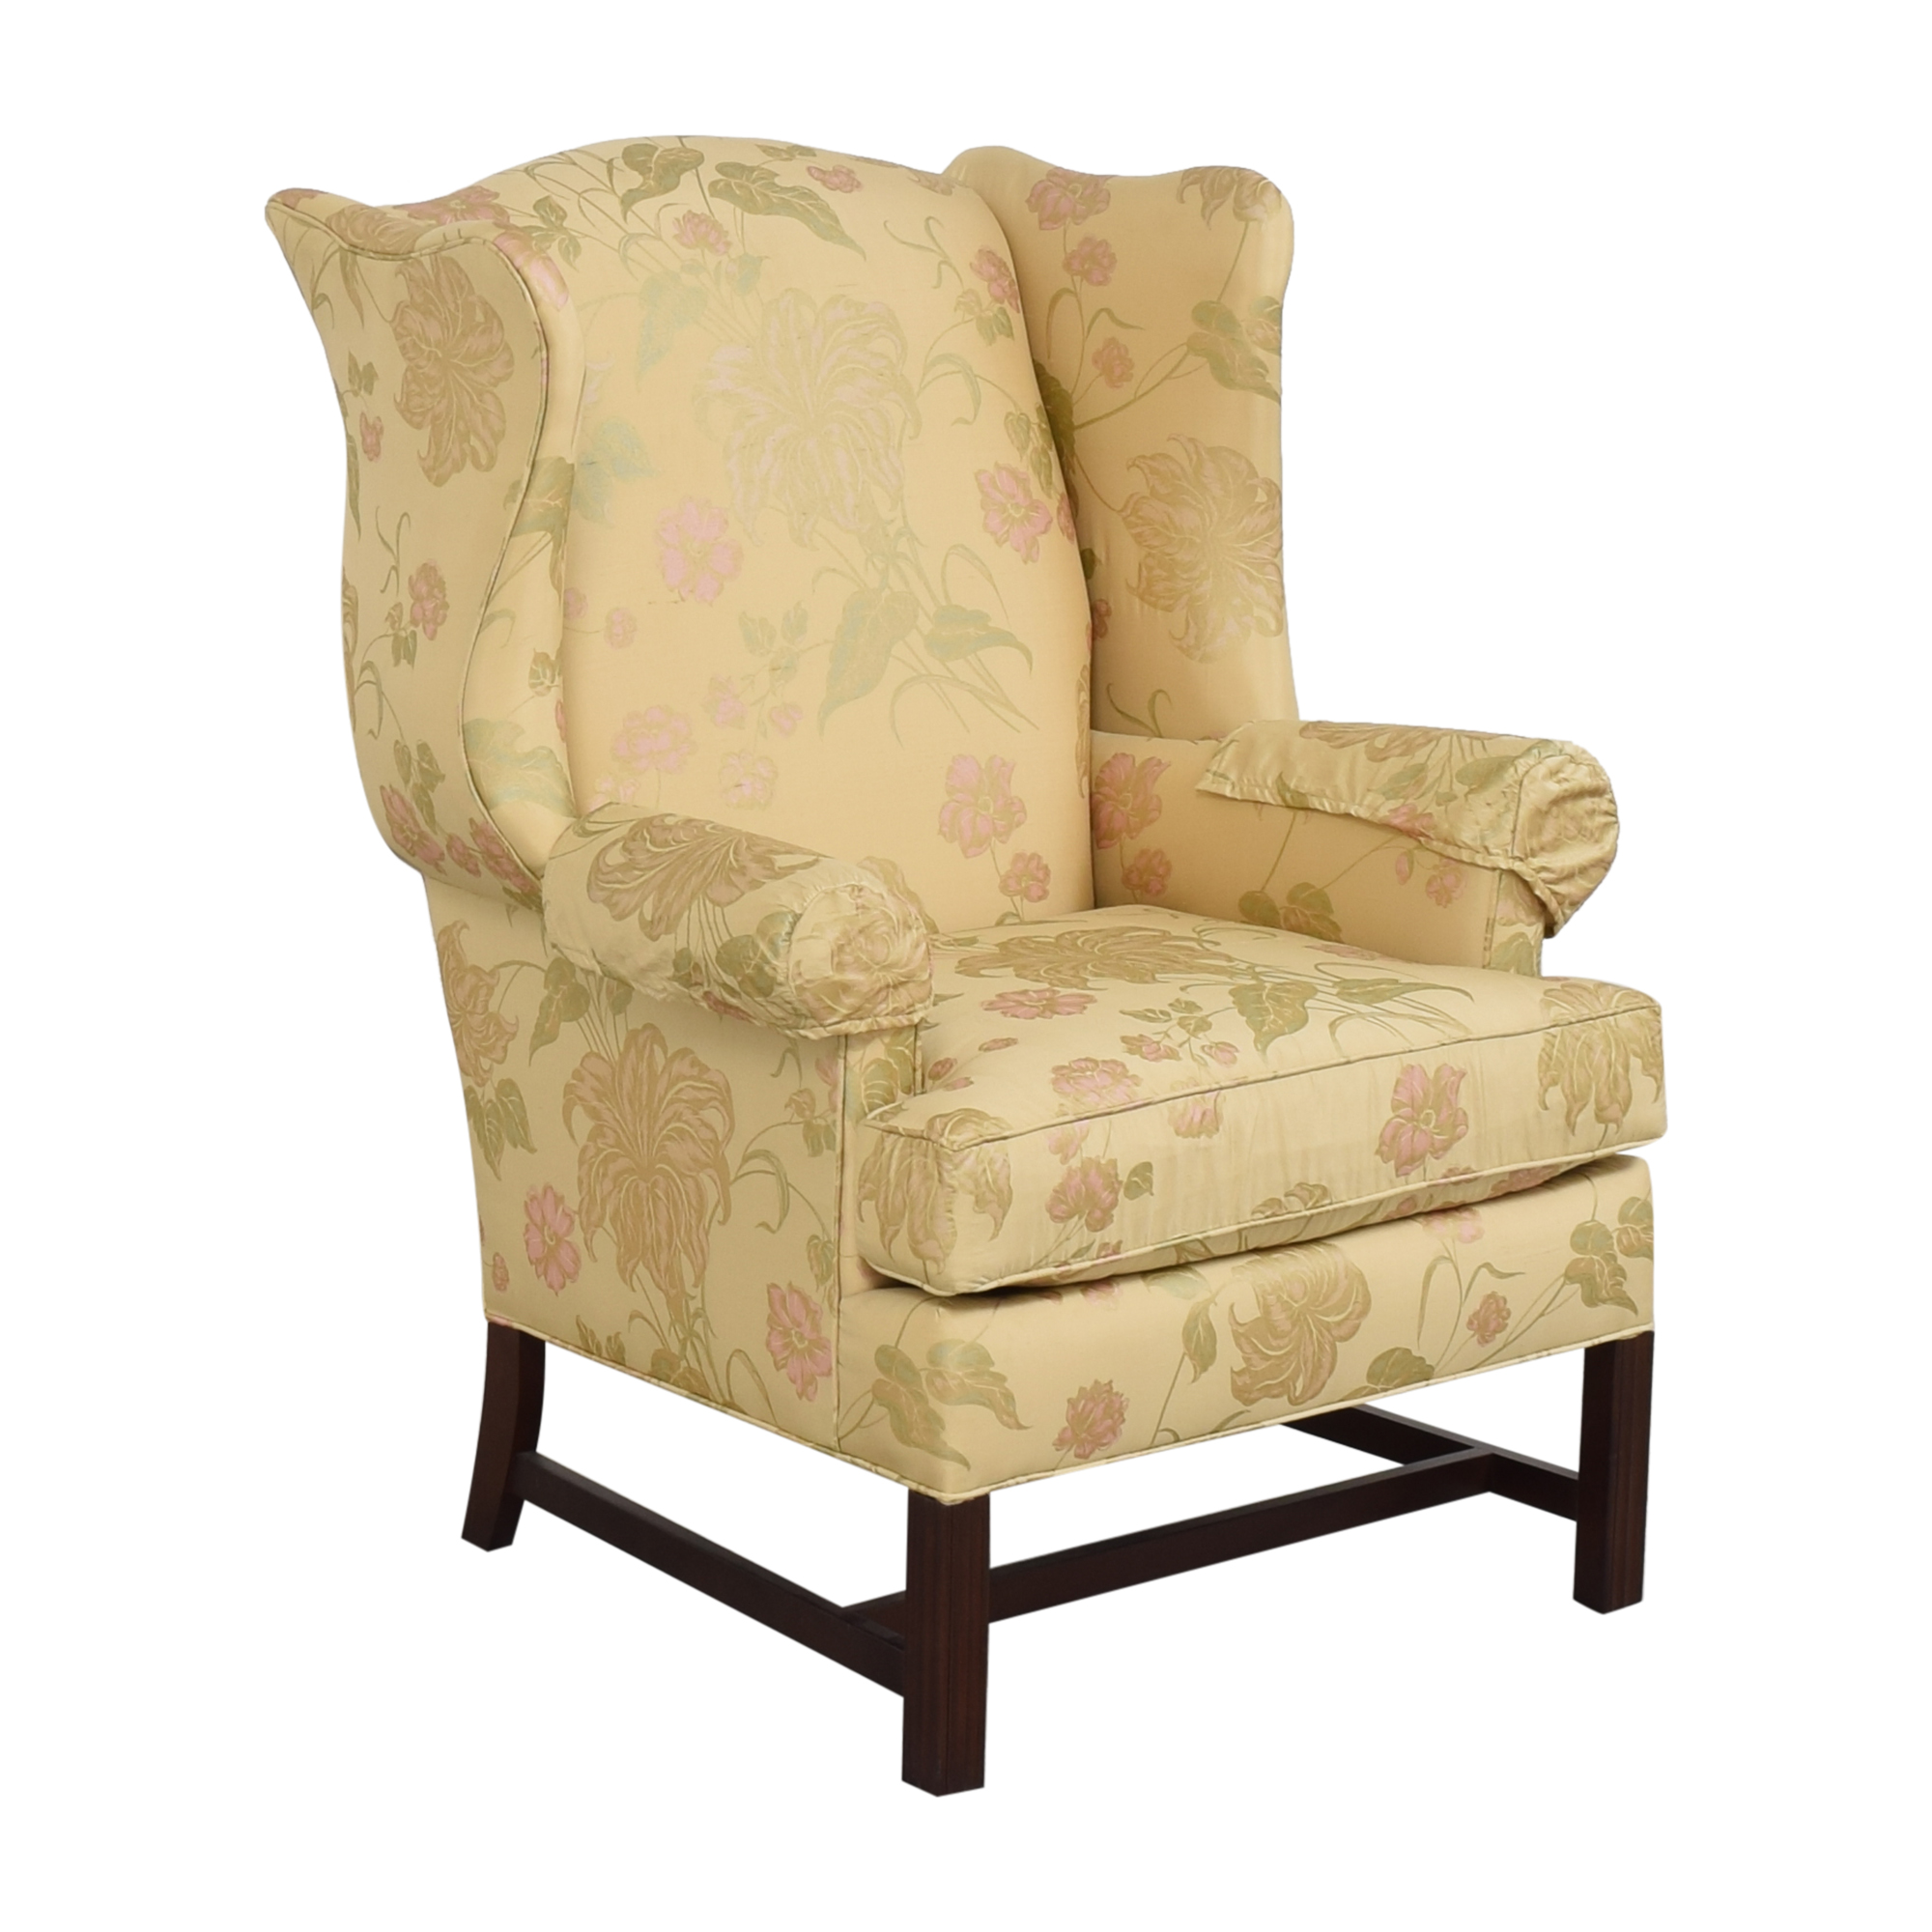 shop CR Laine Upholstered Accent Chair CR Laine